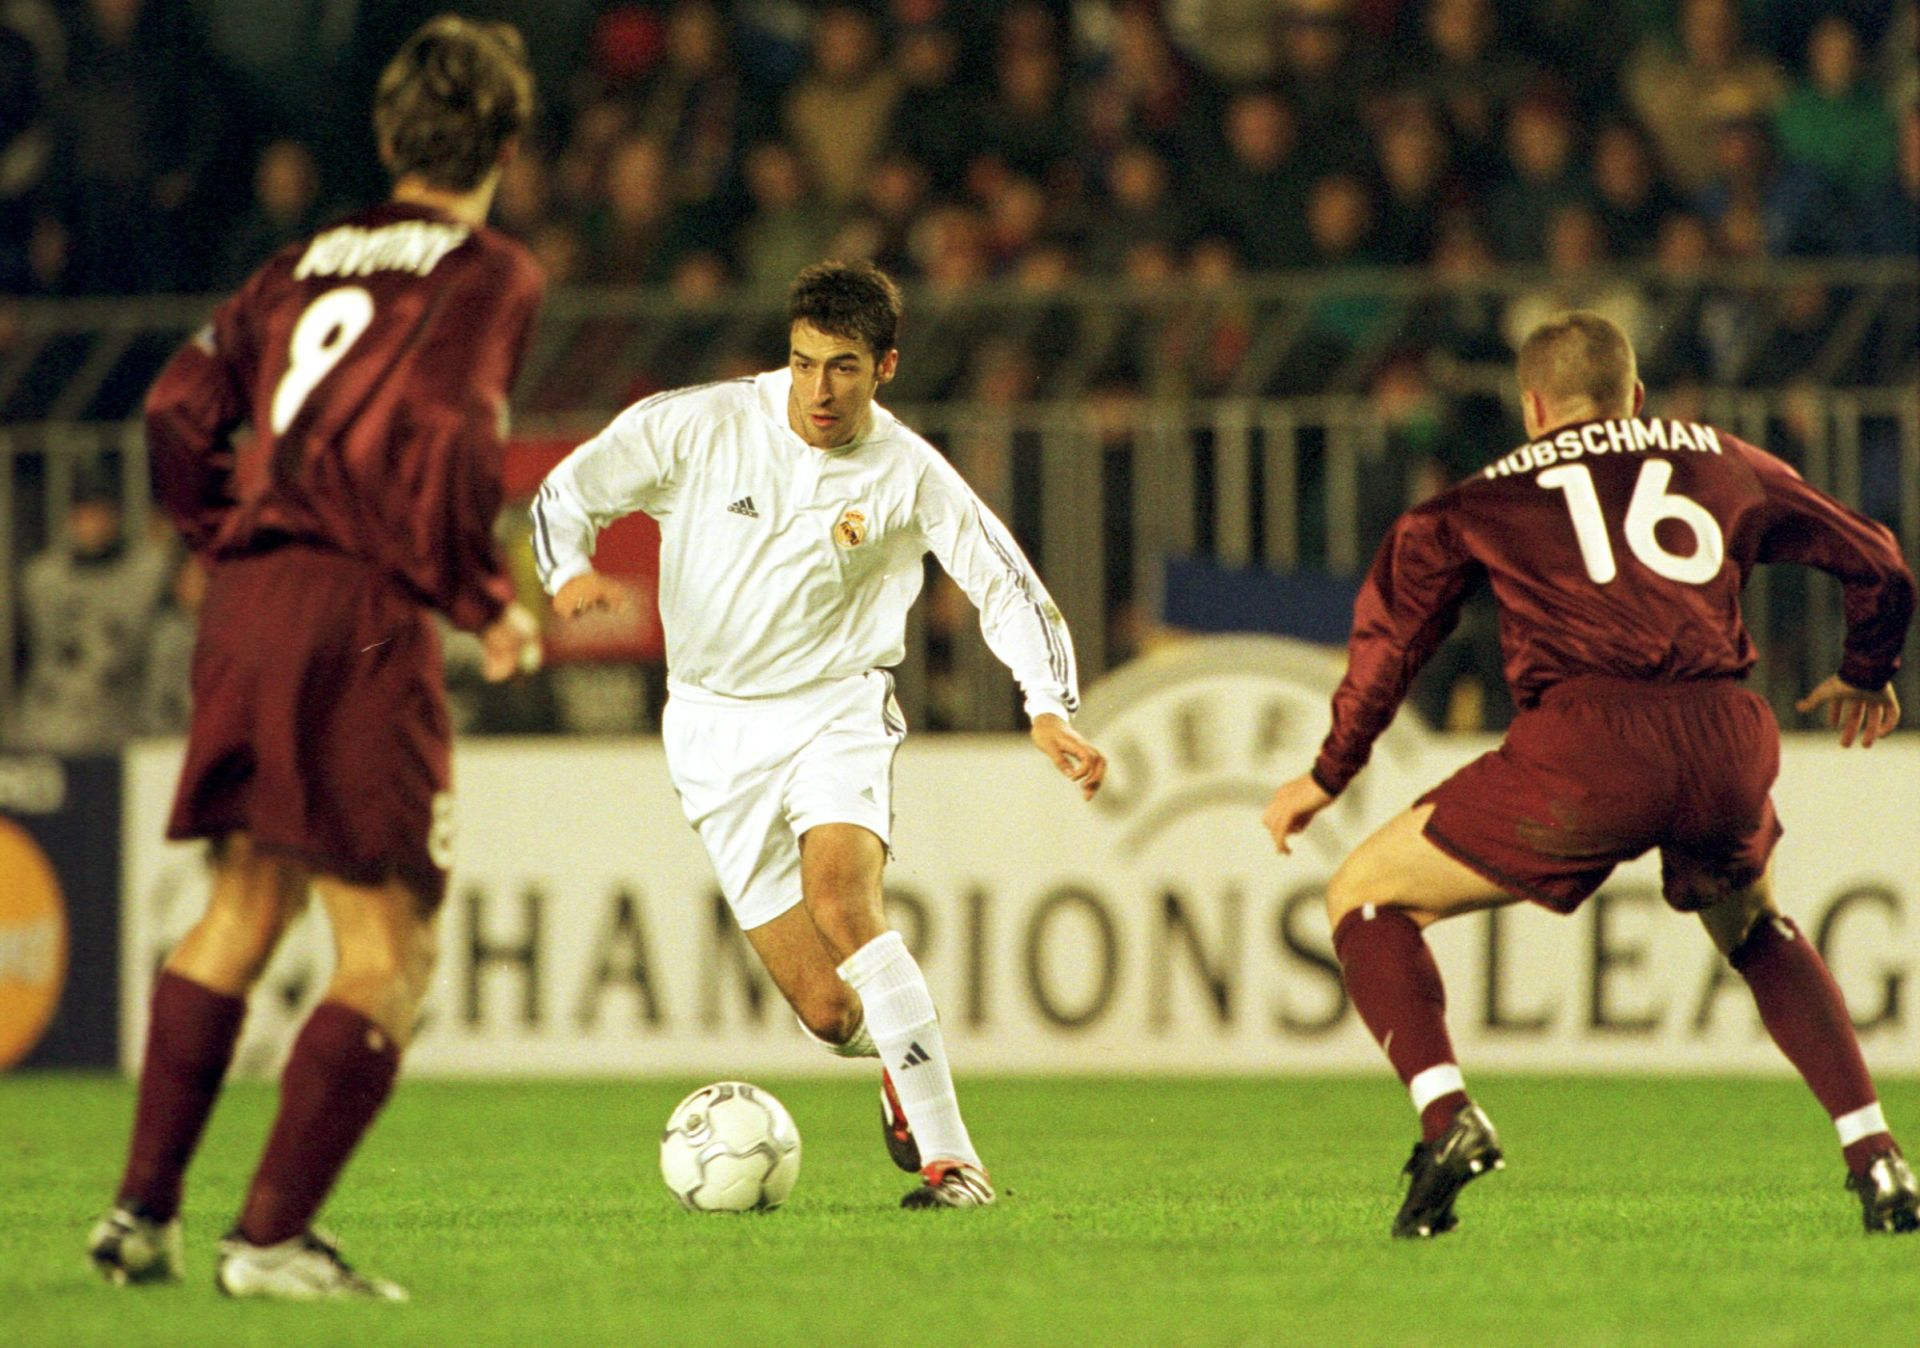 SPARTA PRAGA - REAL MADRYT 2:3 PILKA NOZNA, LIGA MISTRZOW PRAGA, 21/11/2001 FOT.: PRZEGLAD SPORTOWY/NEWSPIX.PL N/Z.: JIRI NOVOTNY (SPARTA), RAUL GONZALEZ (REAL MADRYT), THOMAS HUBSCHMANN (SPARTA) --- Newspix.pl *** Local Caption *** www.newspix.pl mail us: info@newspix.pl call us: 0048 022 23 22 222 --- Polish Picture Agency by Axel Springer Poland